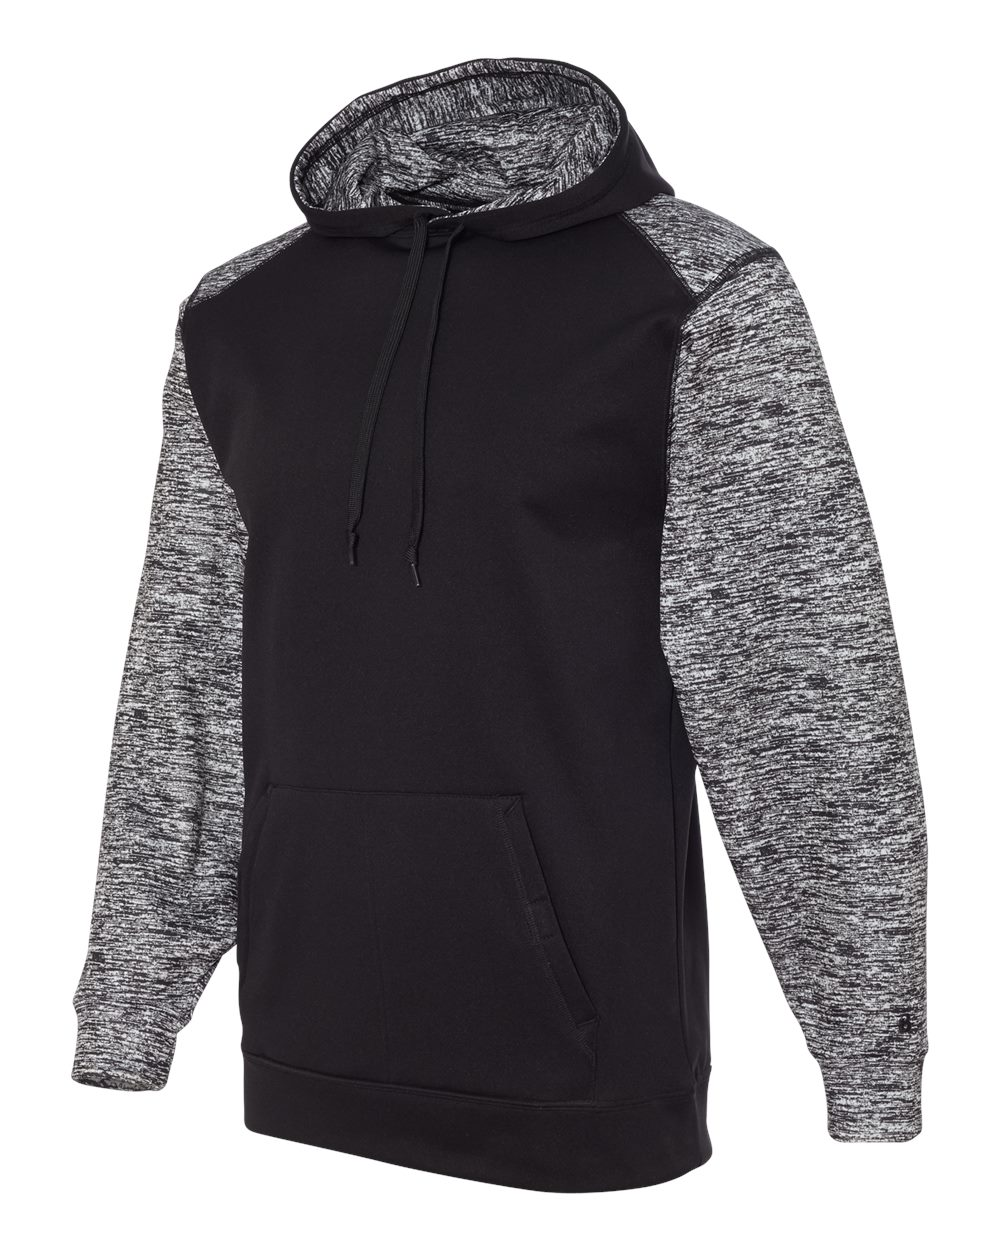 Badger 1462 - Blend Performance Hooded Sweatshirt